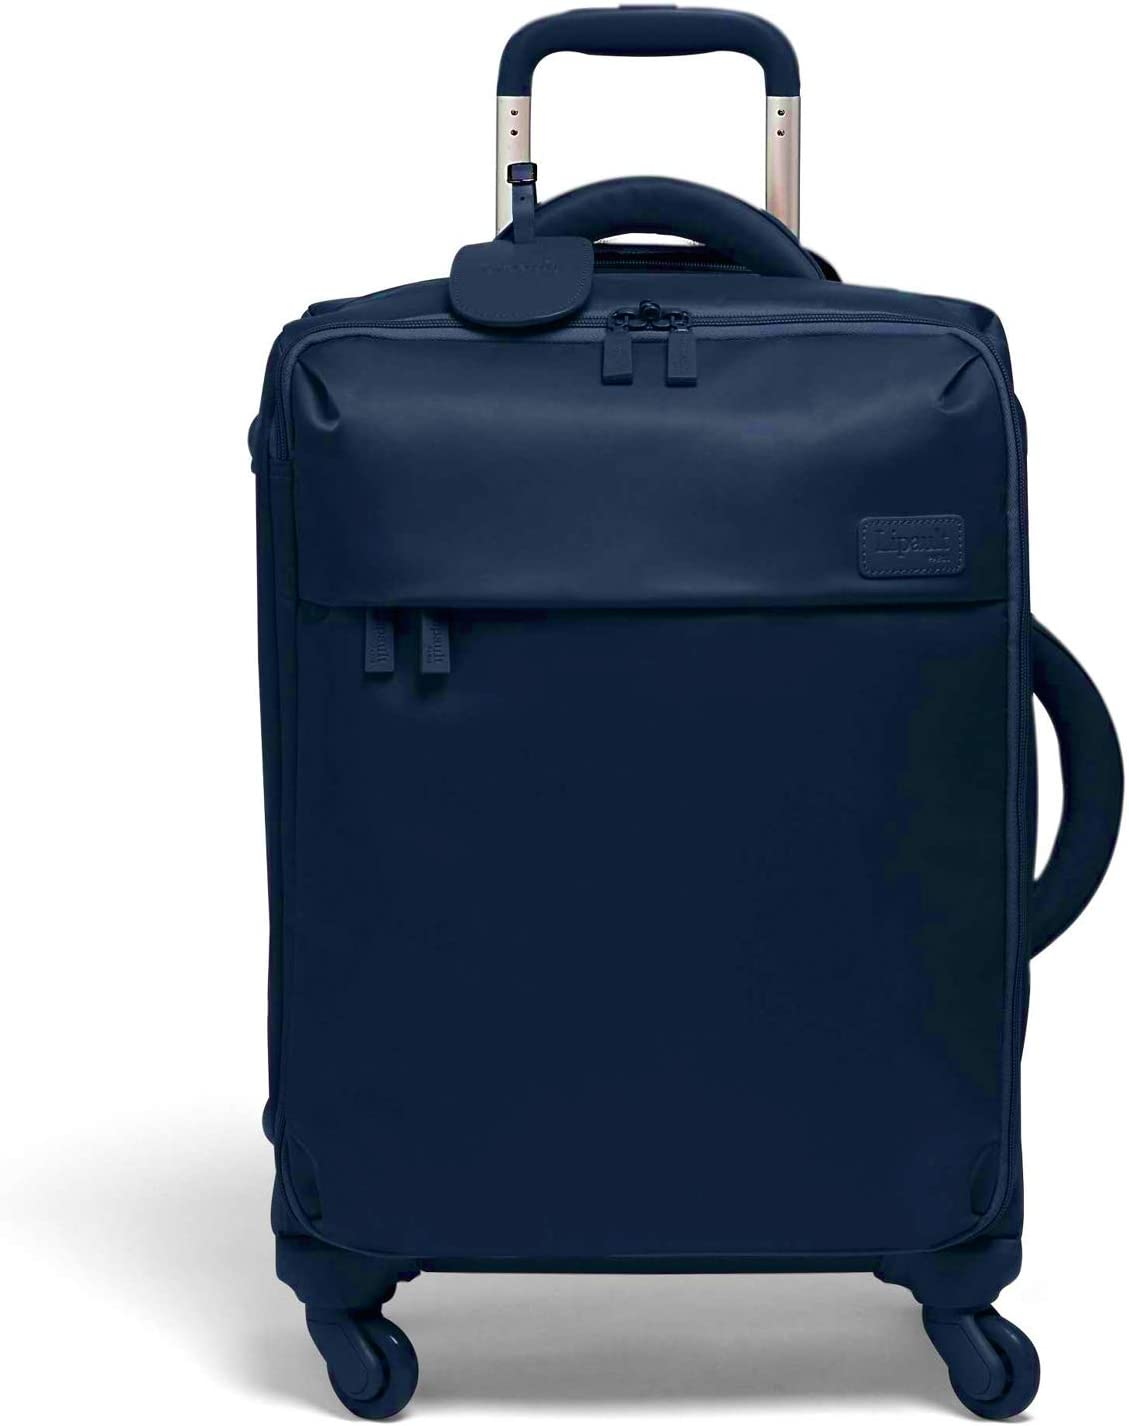 Original Plume Spinner 55//20 Luggage Navy Carry-On Rolling Bag for Women Lipault